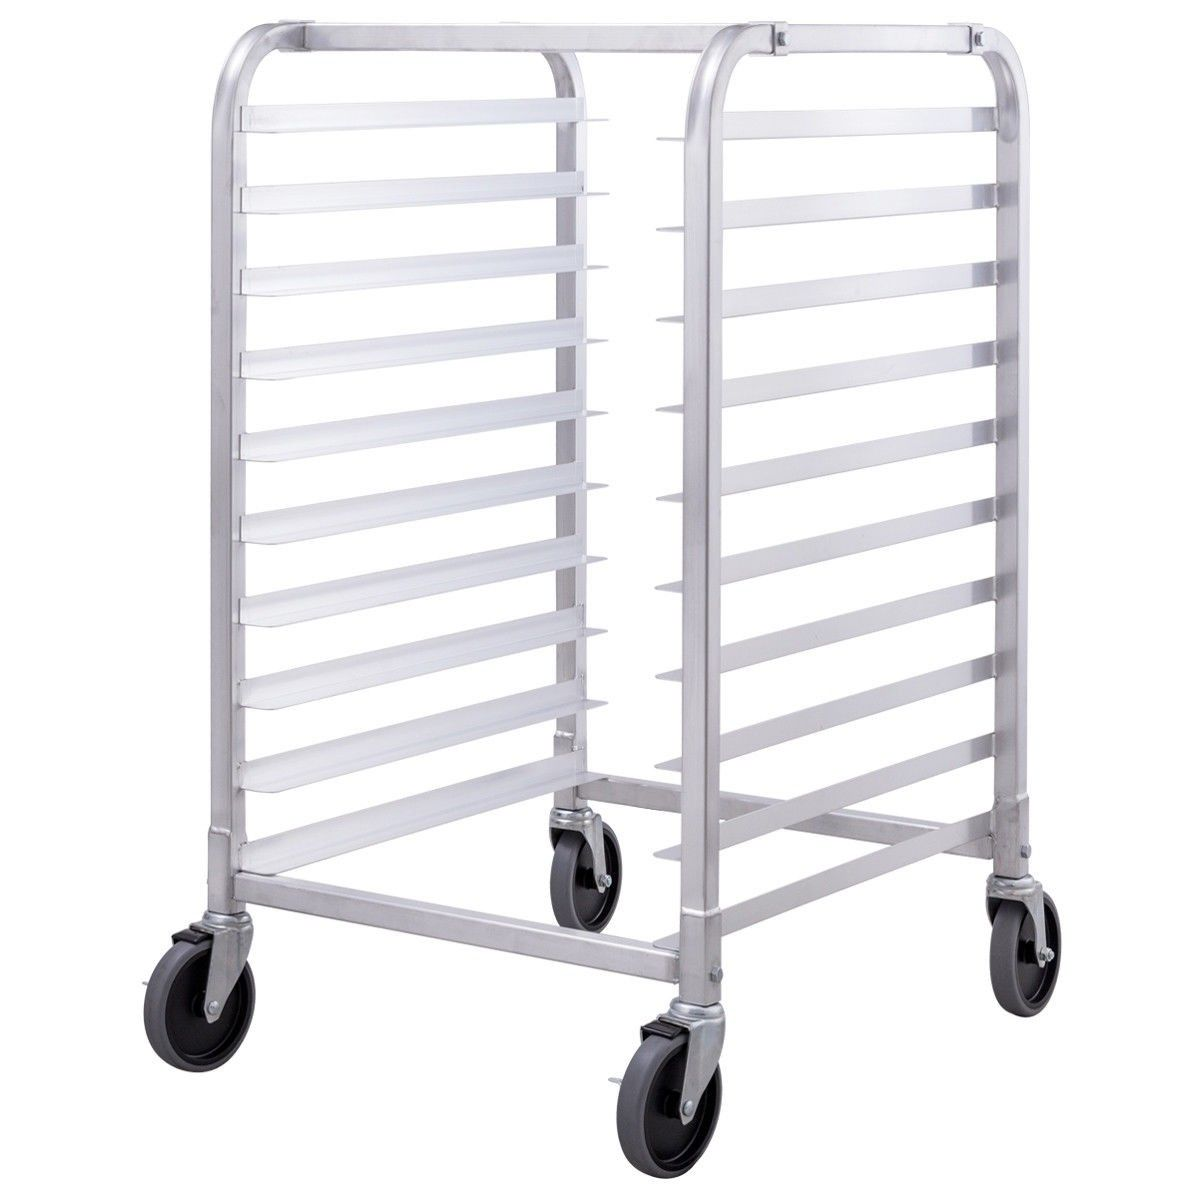 10 Sheet Aluminum Bakery Rack Rolling Commercial Cookie Bun Pan Pan Rack Aluminium Kitchen Bakery